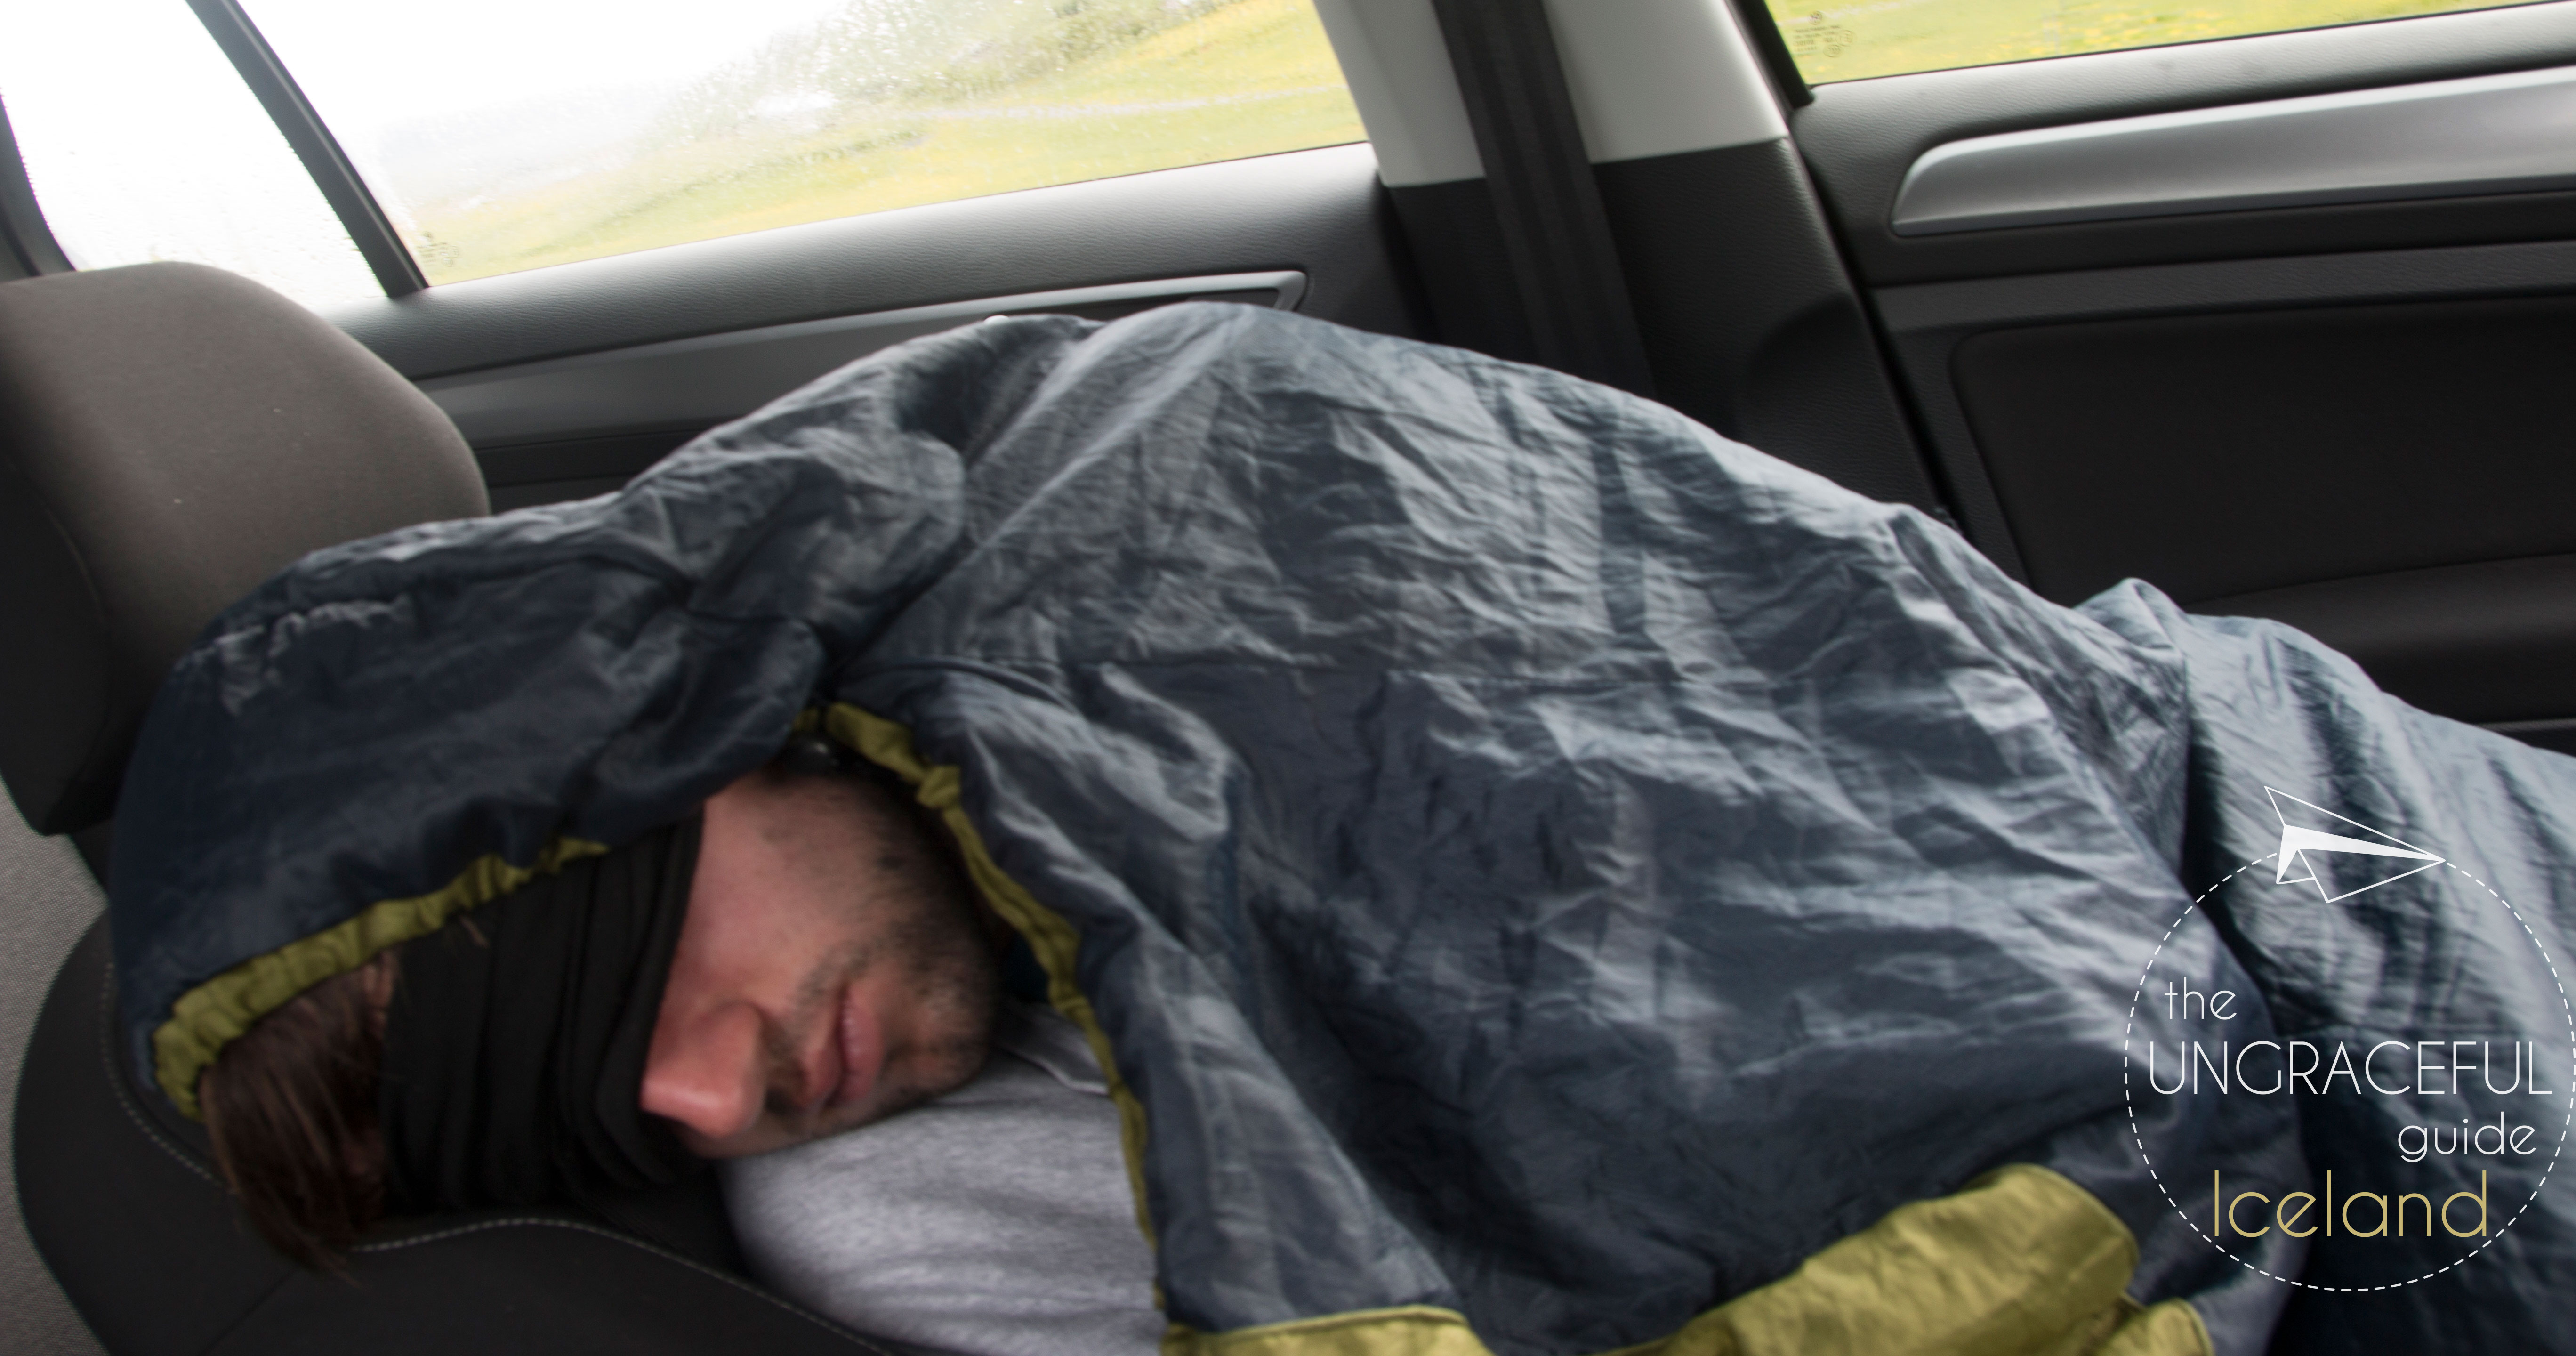 """<img src=""""images/"""" width=""""800"""" height=""""600"""" alt=""""iceland - sleeping in car iceland 1 - Iceland: How to get the most on a budget"""">"""